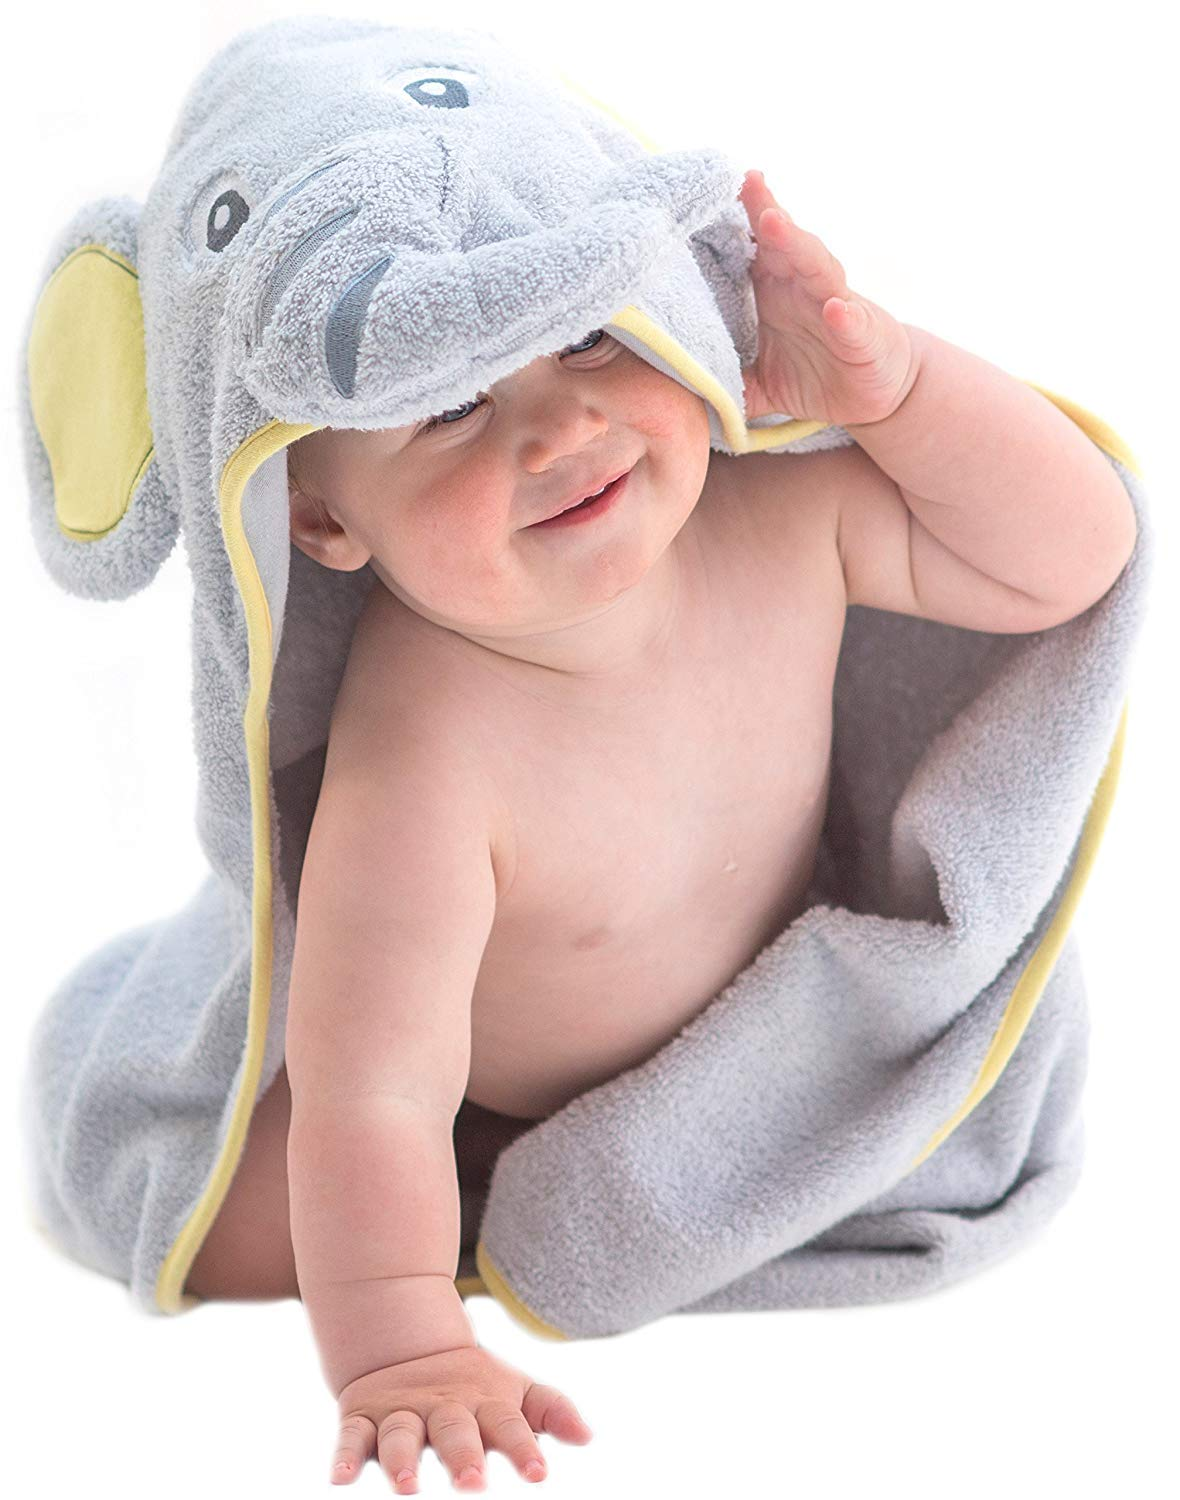 Hooded Baby Towel, Elephant Design, Ultra Absorbent, Durable Bath Towel Perfect for Girls and Boys by Little Tinkers World